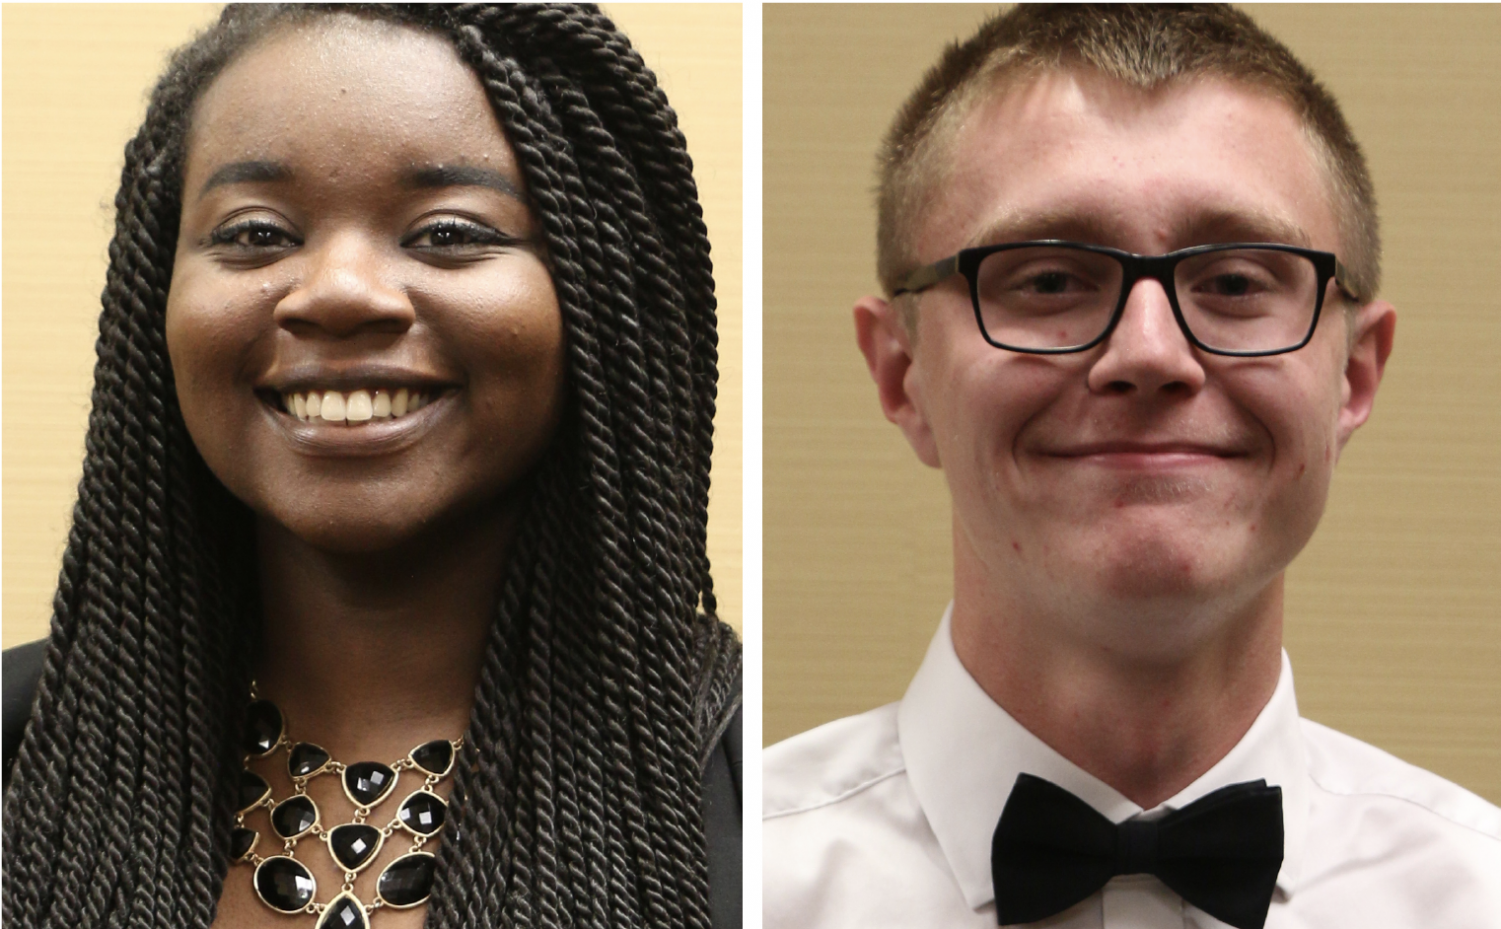 Courtney Price-Dukes (left) and Max Karst) are this year's winners of the Student of the Year award.